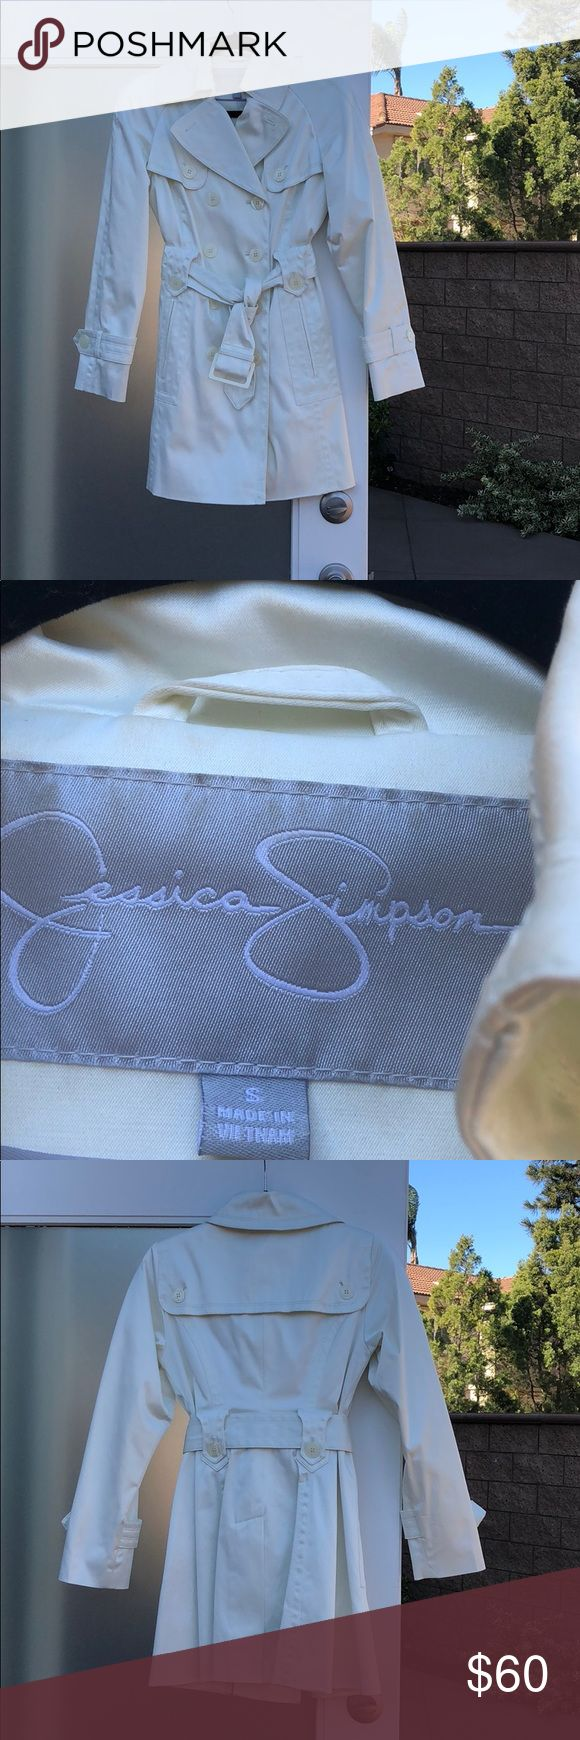 Cream color Jessica Simpson coat size S Cream color Jessica Simpson coat size S   In excellent condition. There are 3 very small areas of discoloration on the coat. I have shown them in the last 2 photos above. The rest of the coat is perfect. Color is a light cream/off white. Jessica Simpson Jackets & Coats